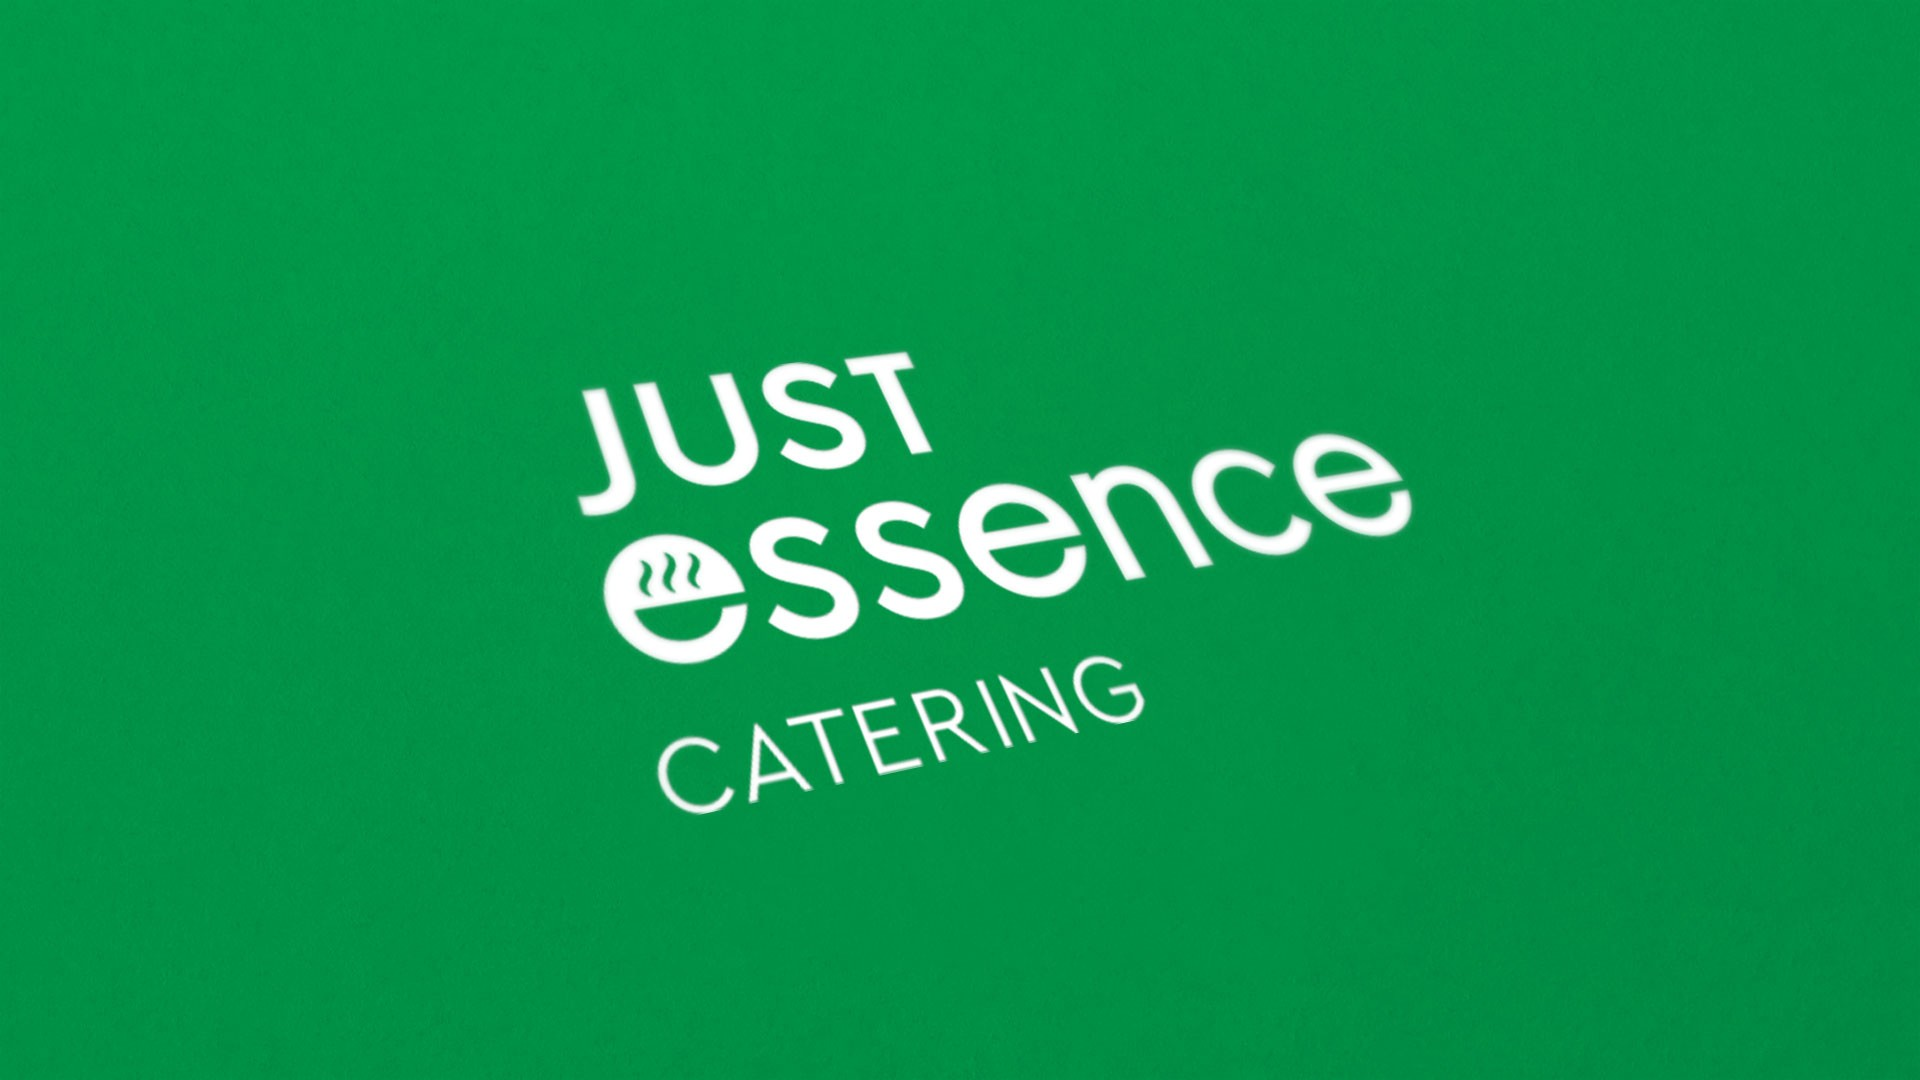 Just Essence 01 logo reversed